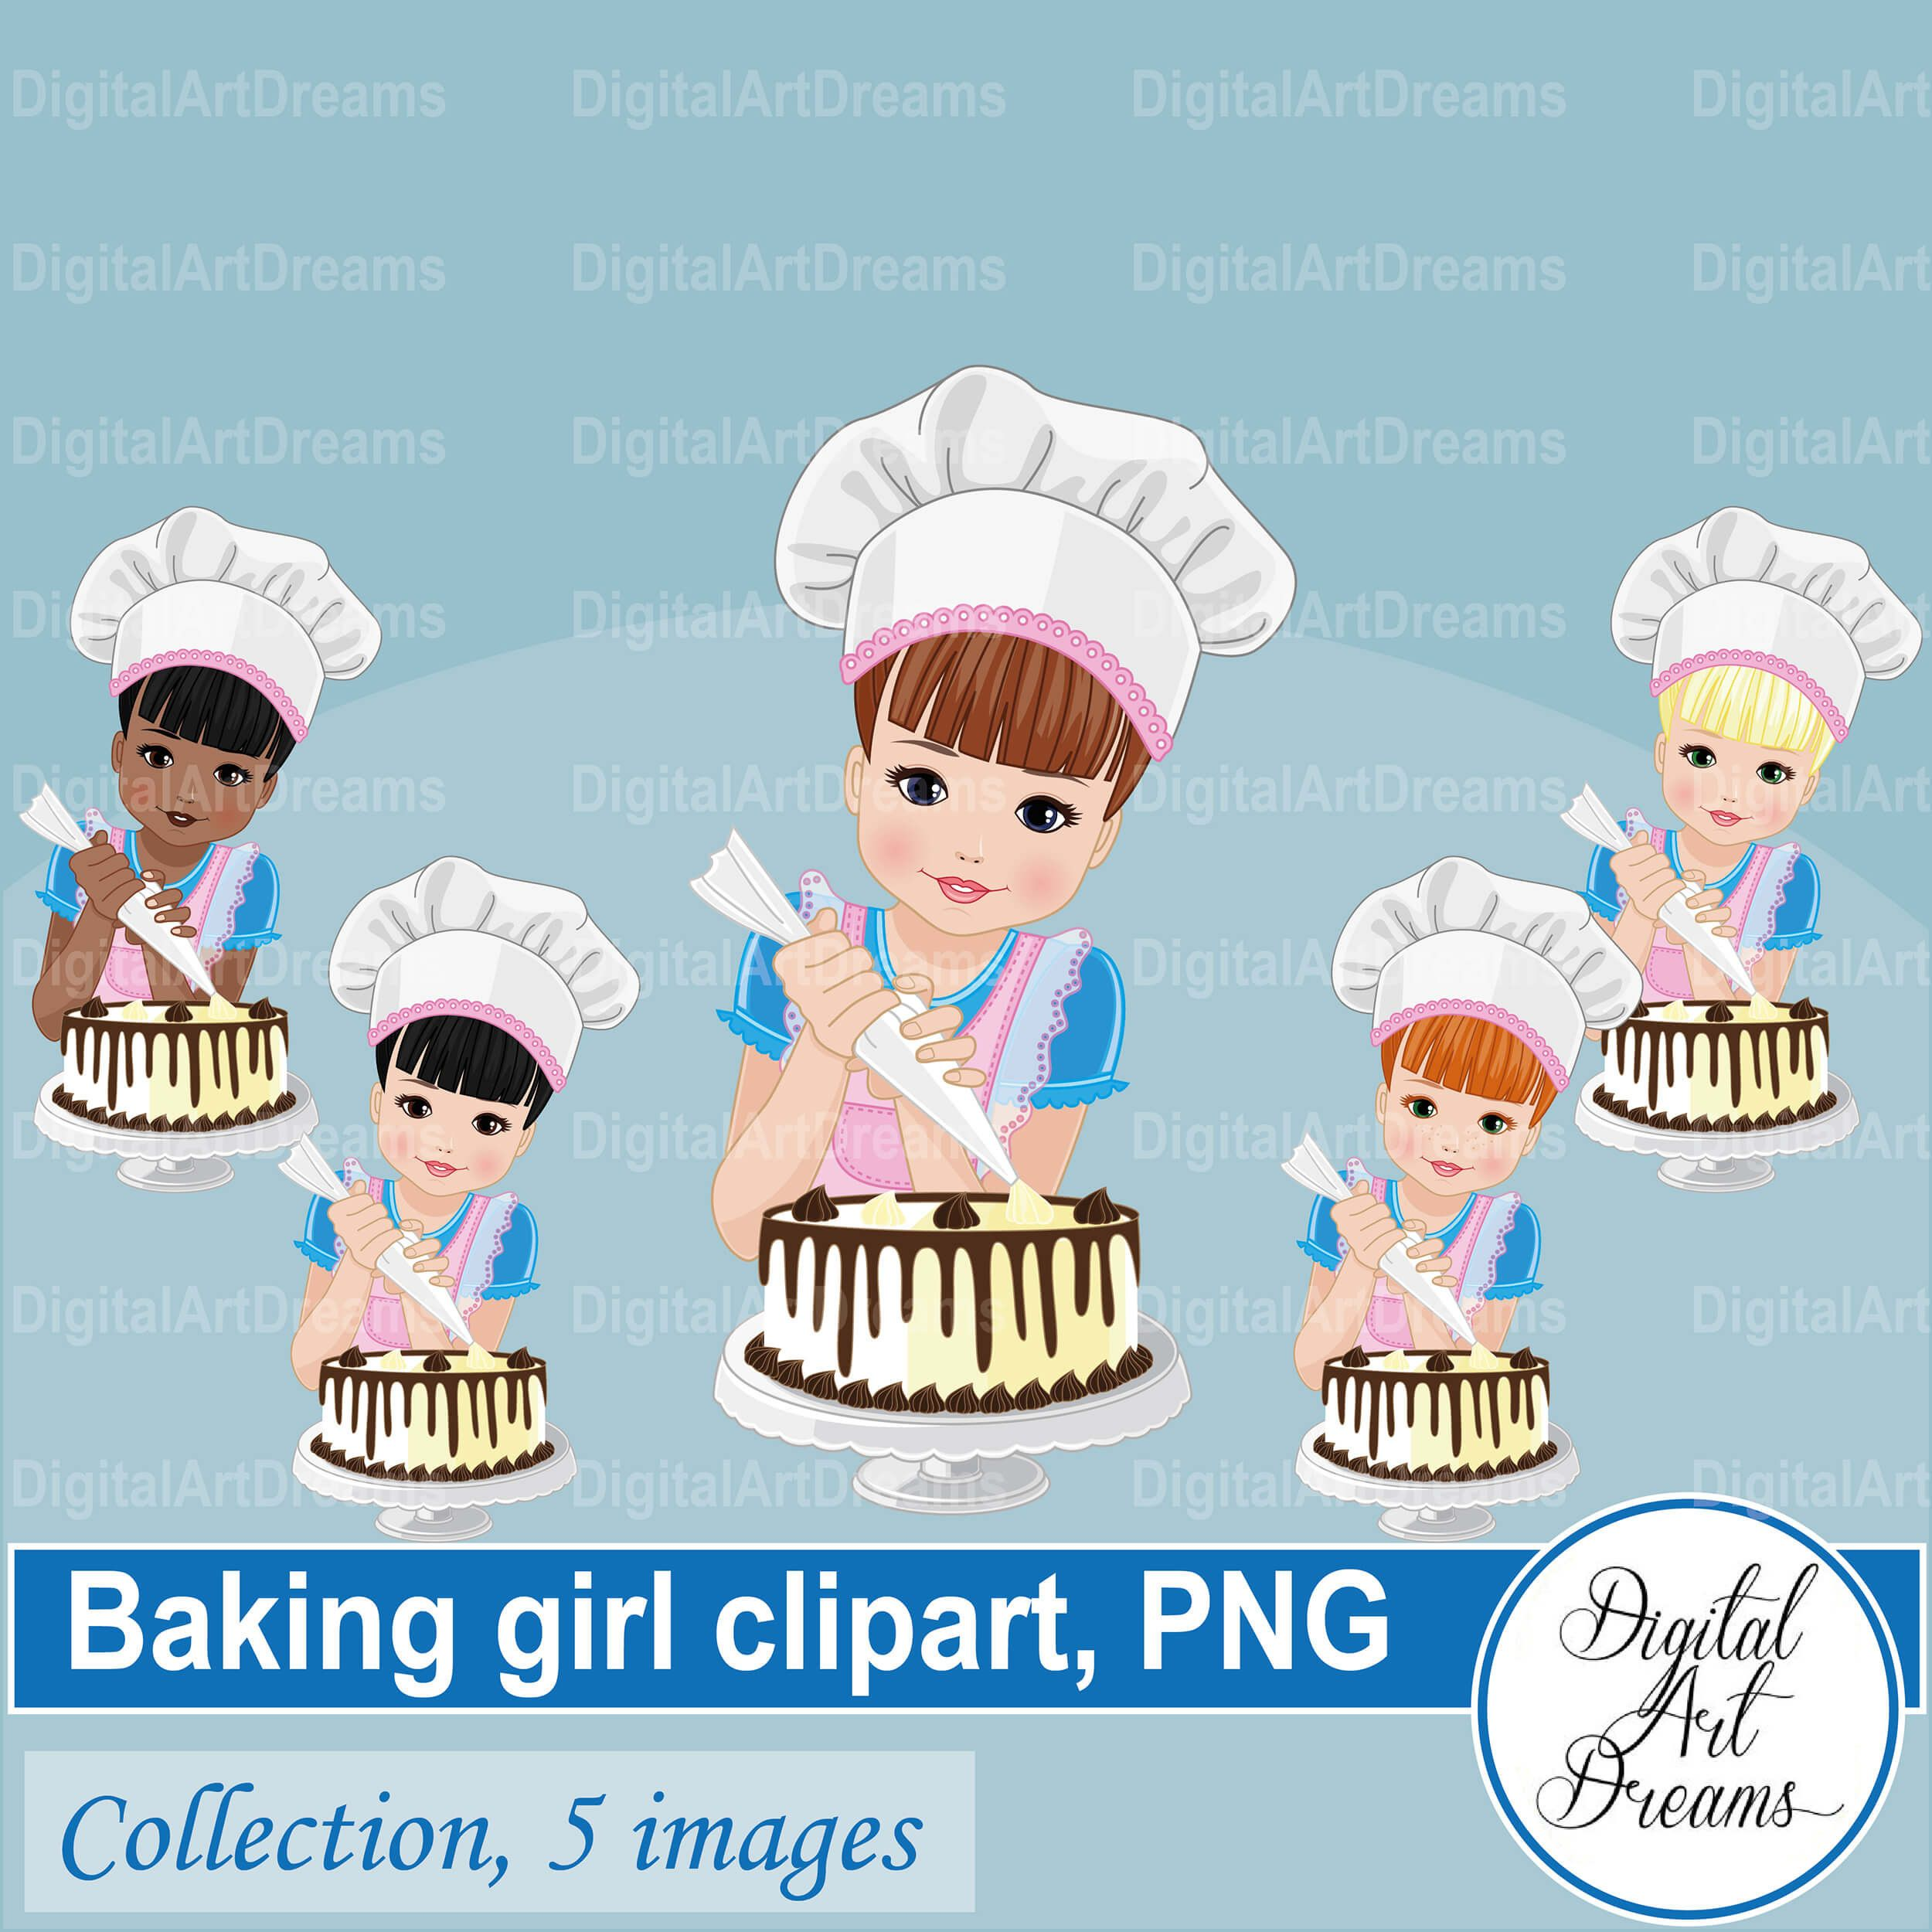 Woman Cooking Cupcakes In The Kitchen Vector Illustration Royalty Free  Cliparts, Vectors, And Stock Illustration. Image 107870309.